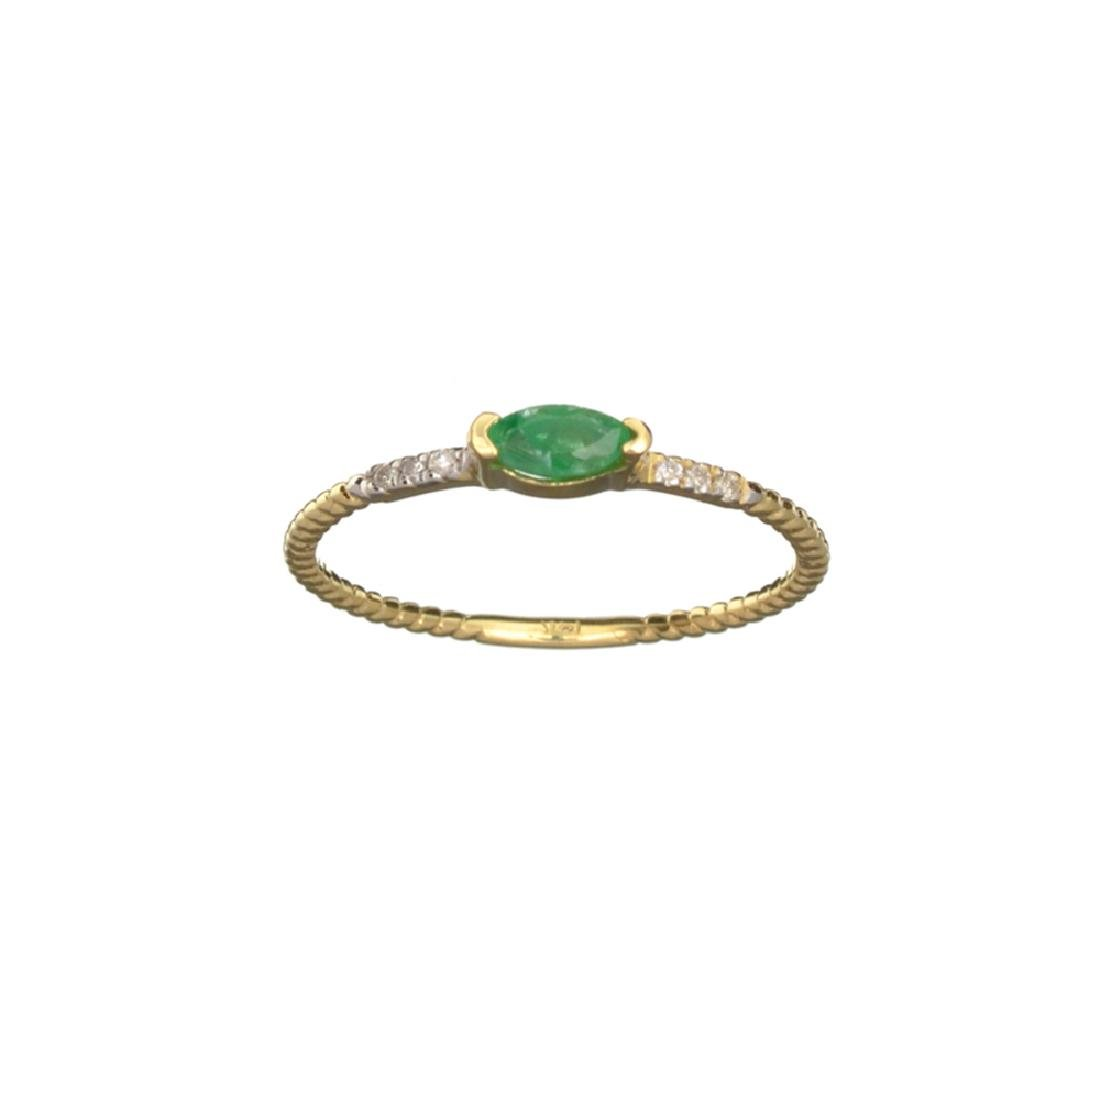 APP: 0.4k Fine Jewelry 14KT Gold, 0.14CT Green Emerald